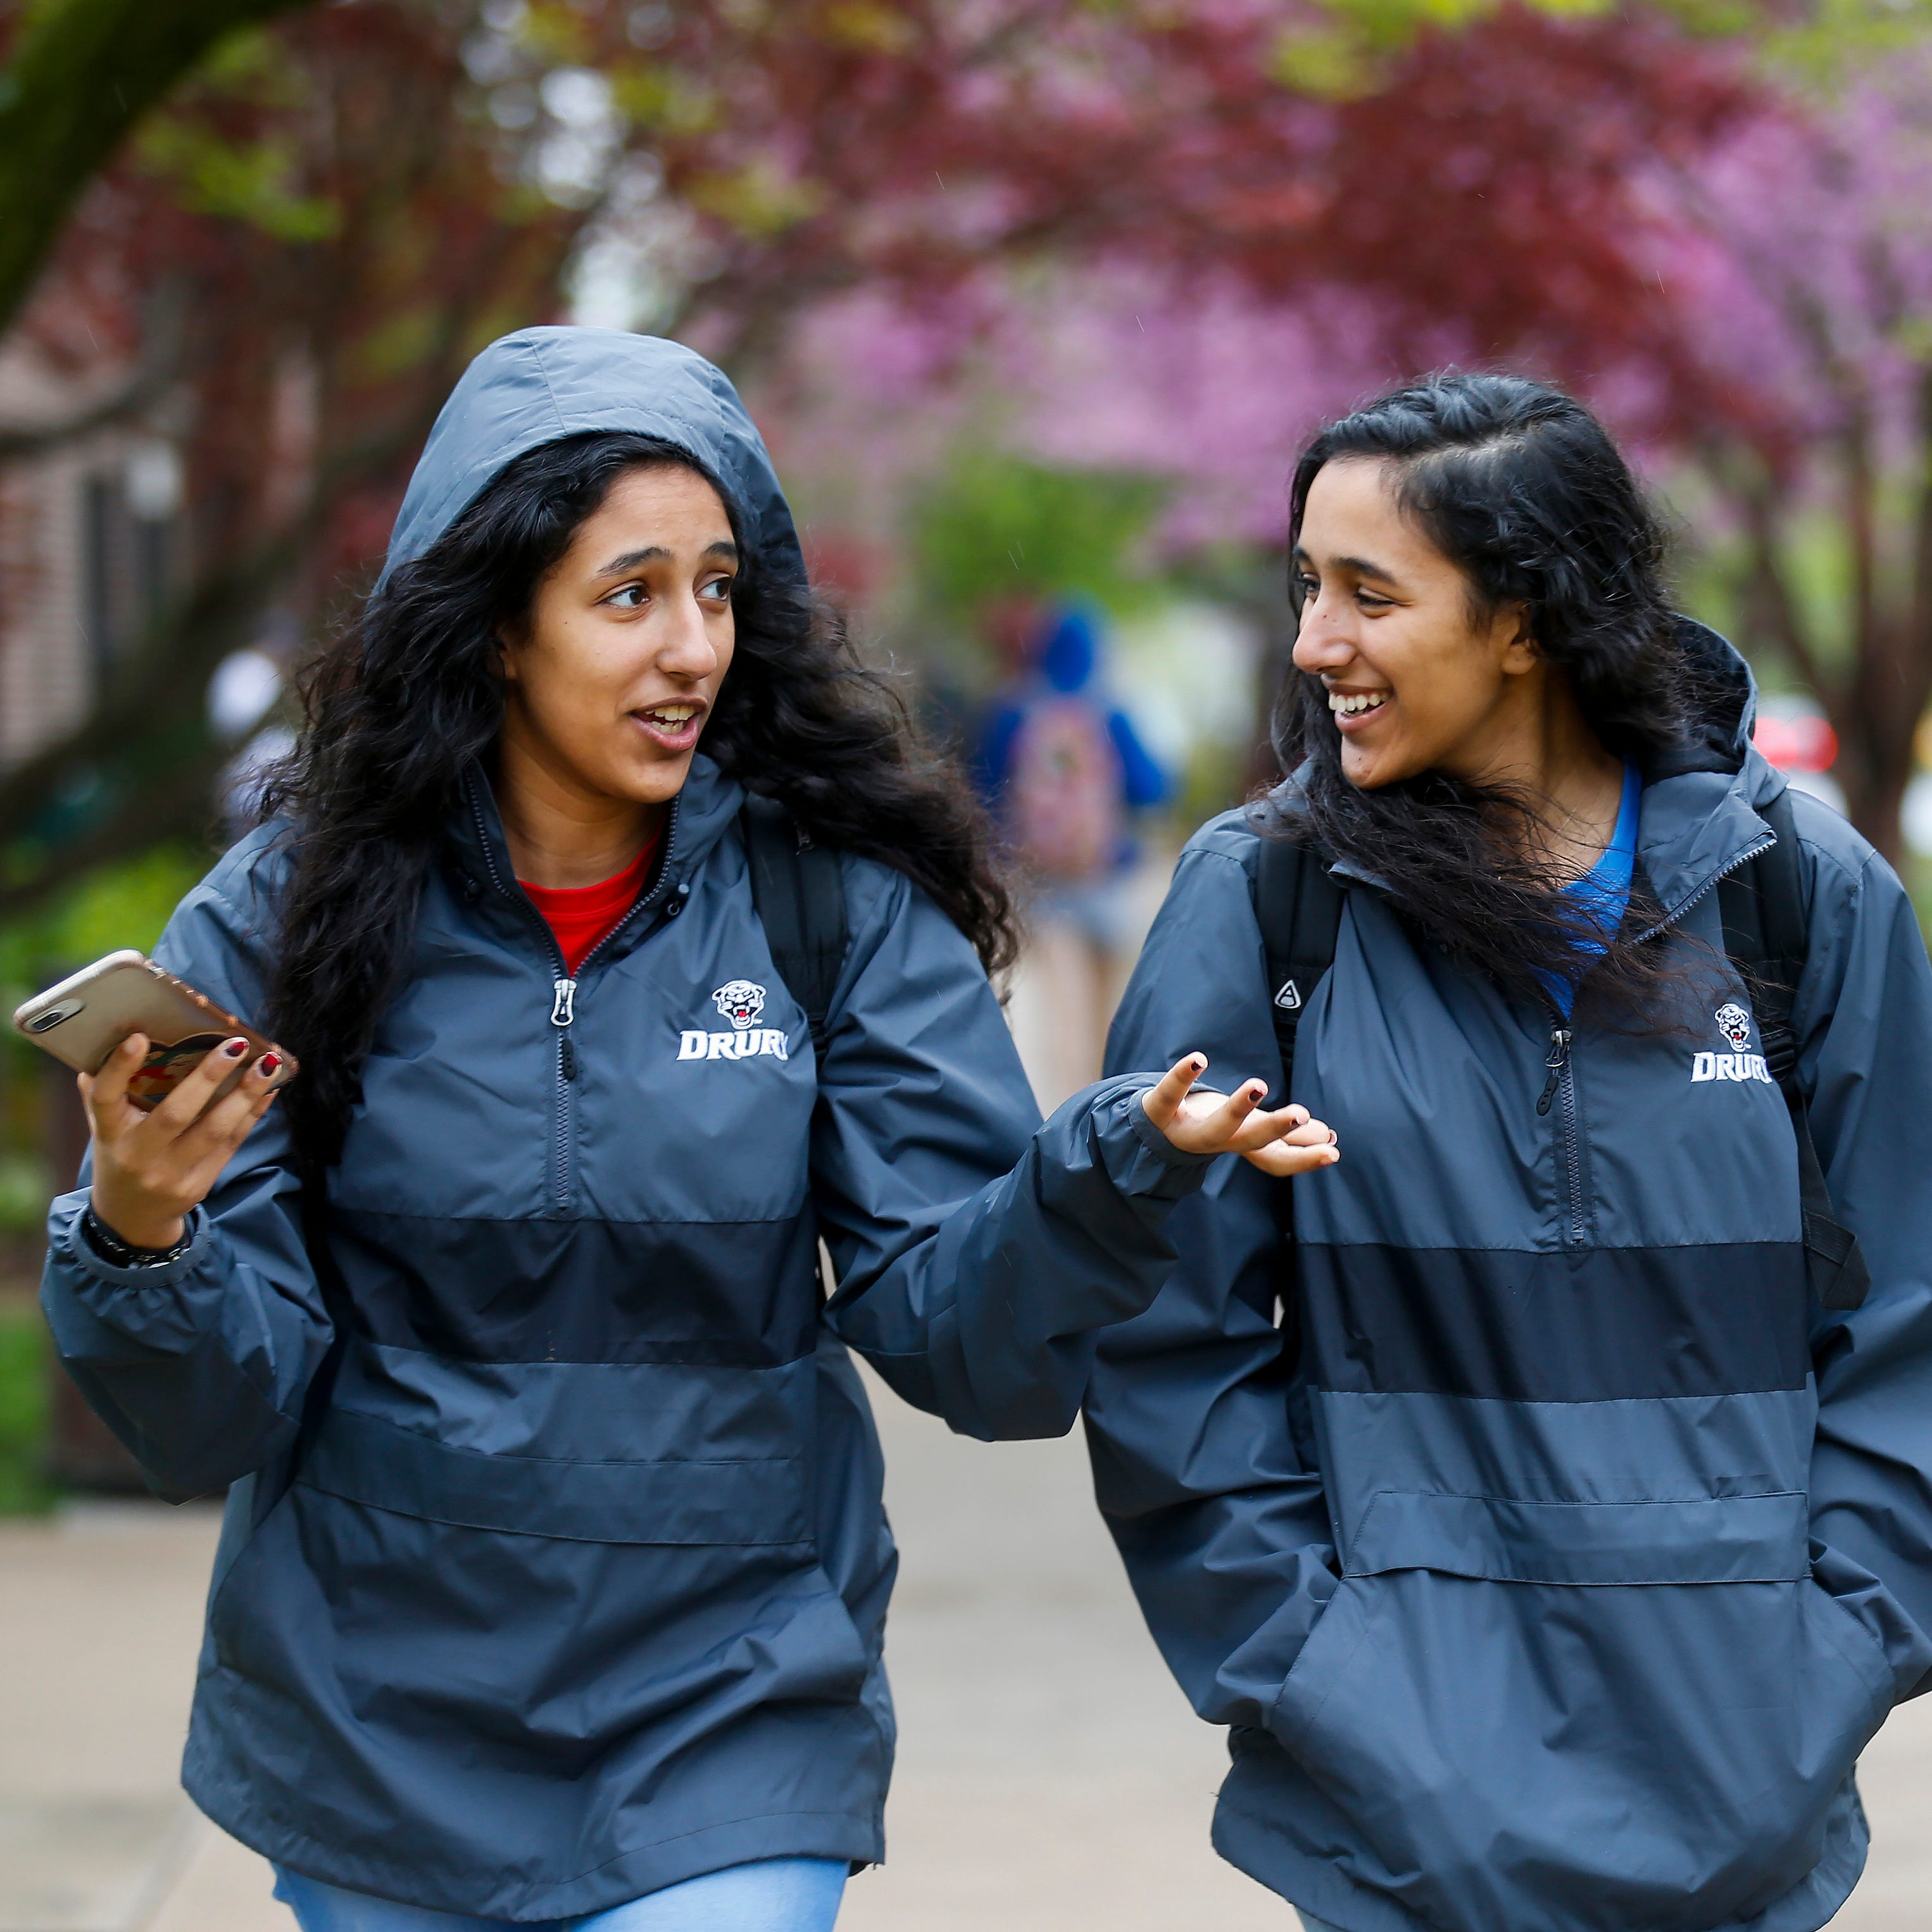 Double-take: Egyptian twins turn heads, make difference at Drury University